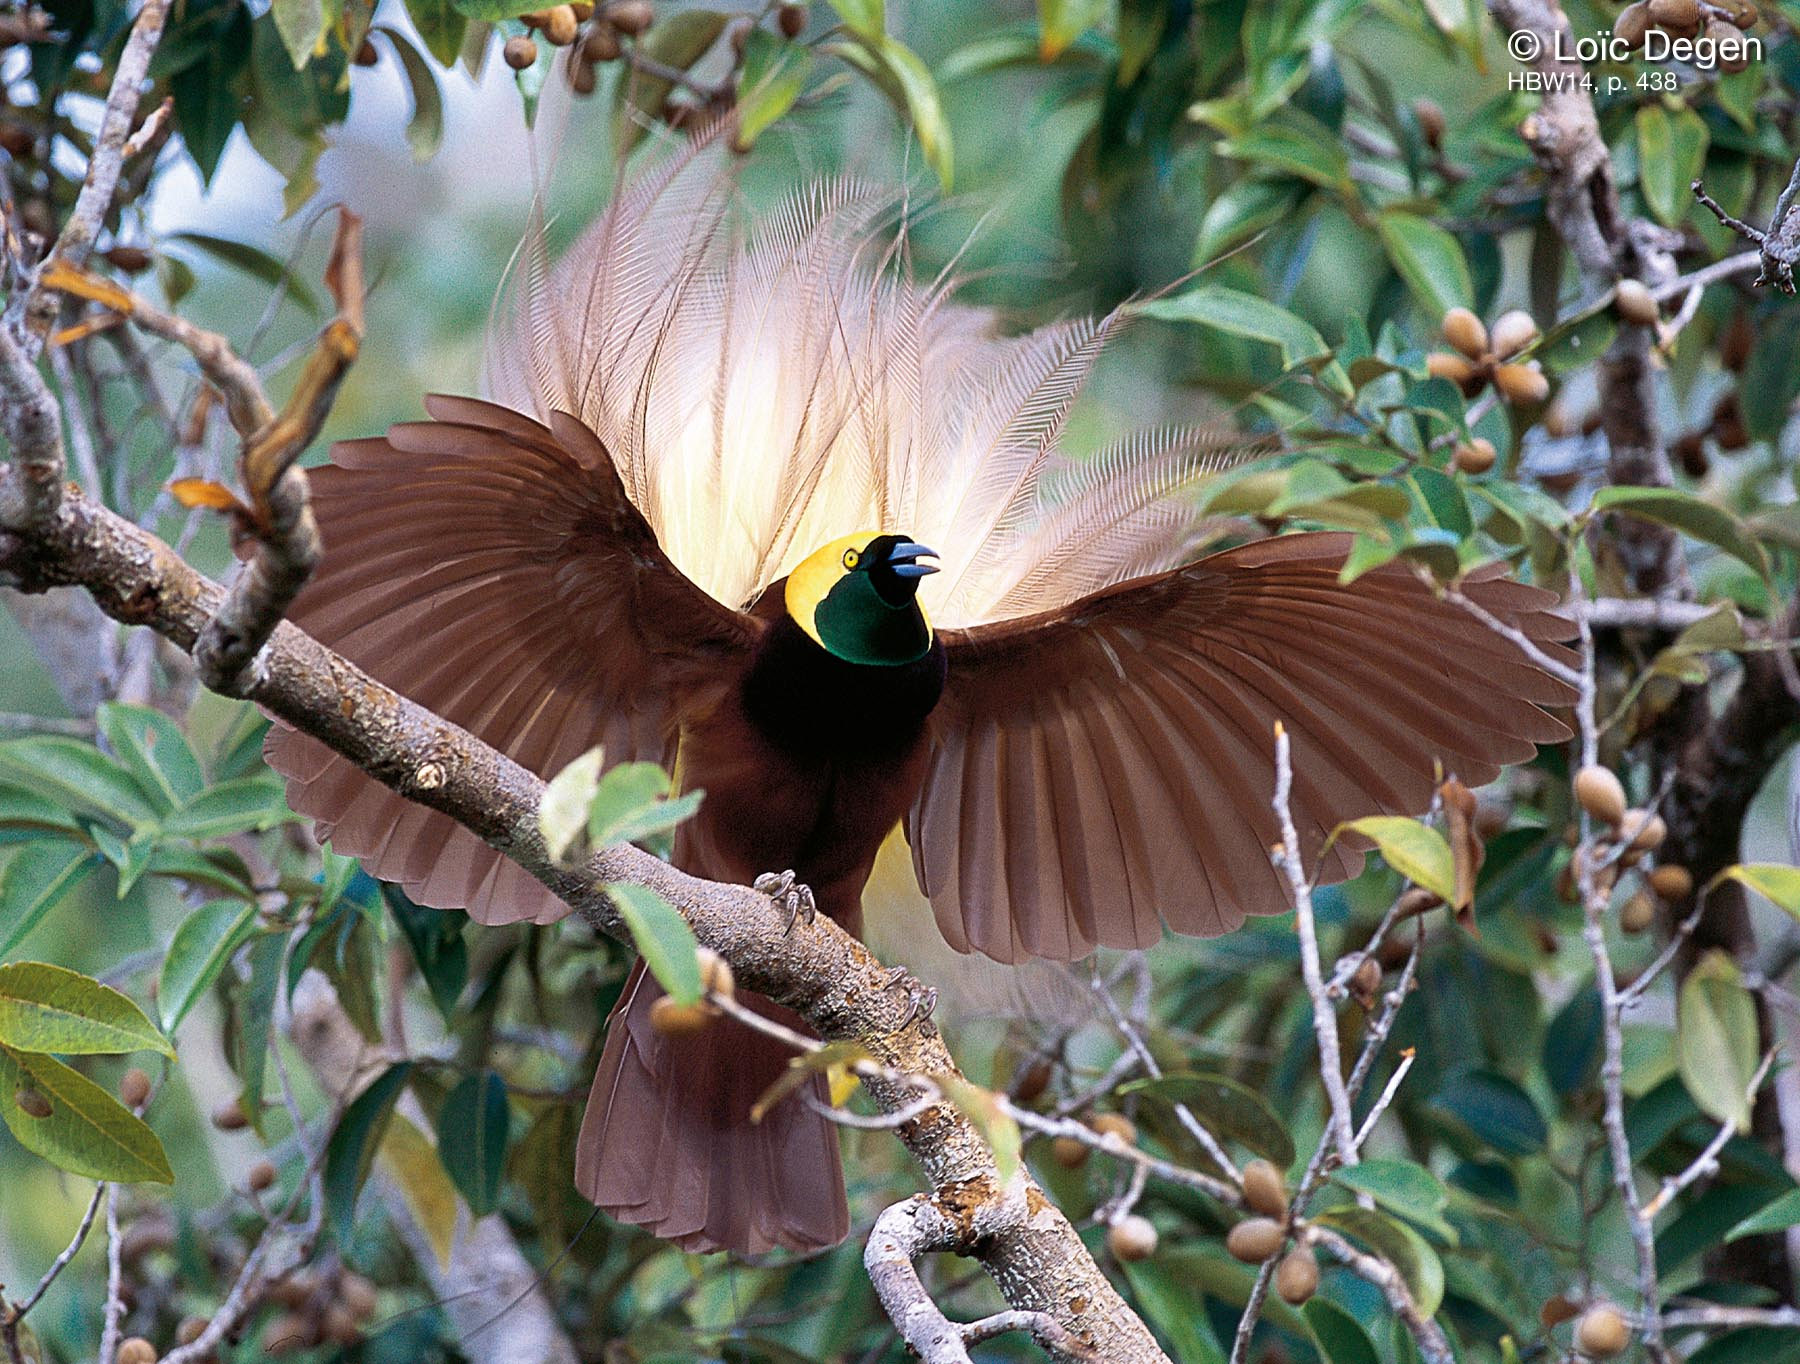 Birds of paradise wallpapers wallpaper cave - Hd images of birds of paradise ...